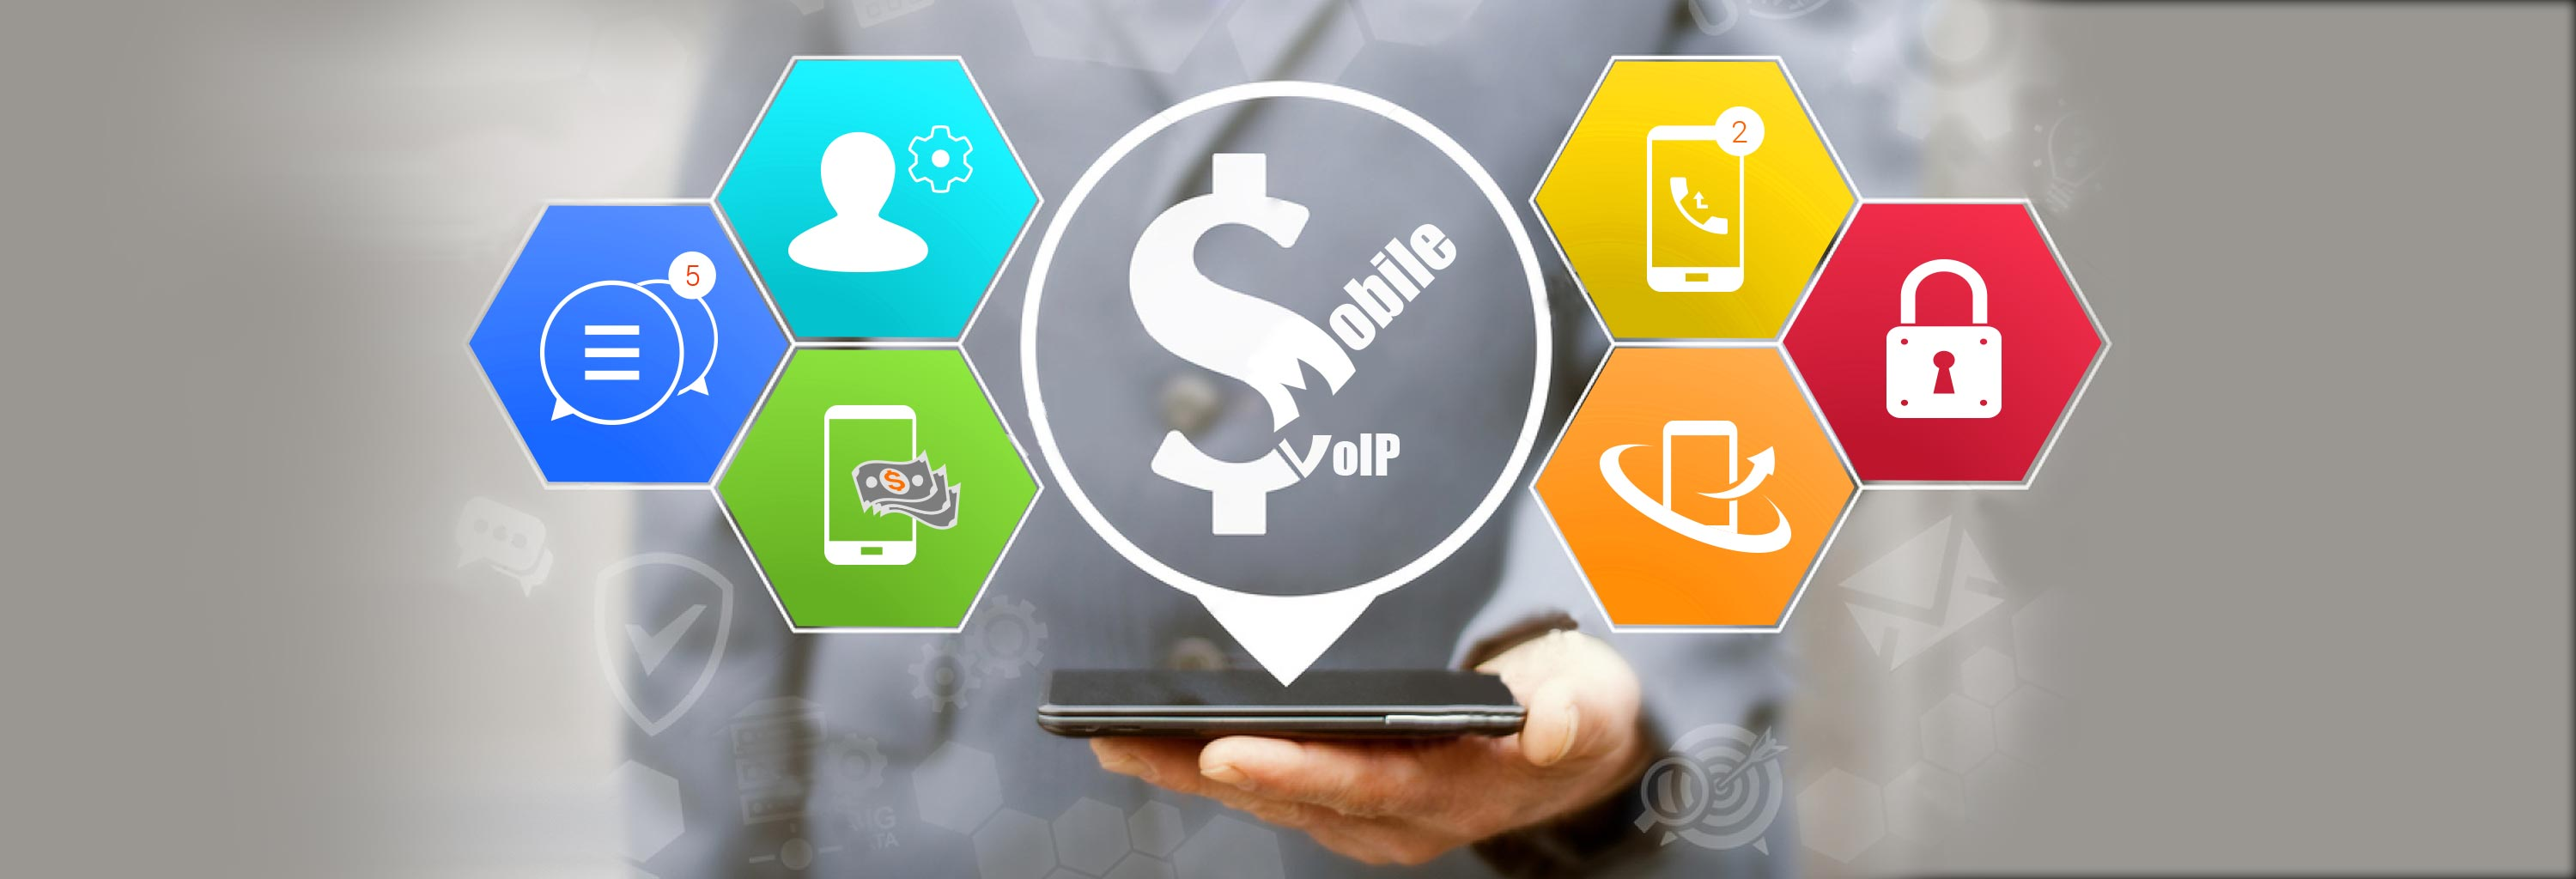 Which Mobile VoIP Features Boost up Your Business Revenue